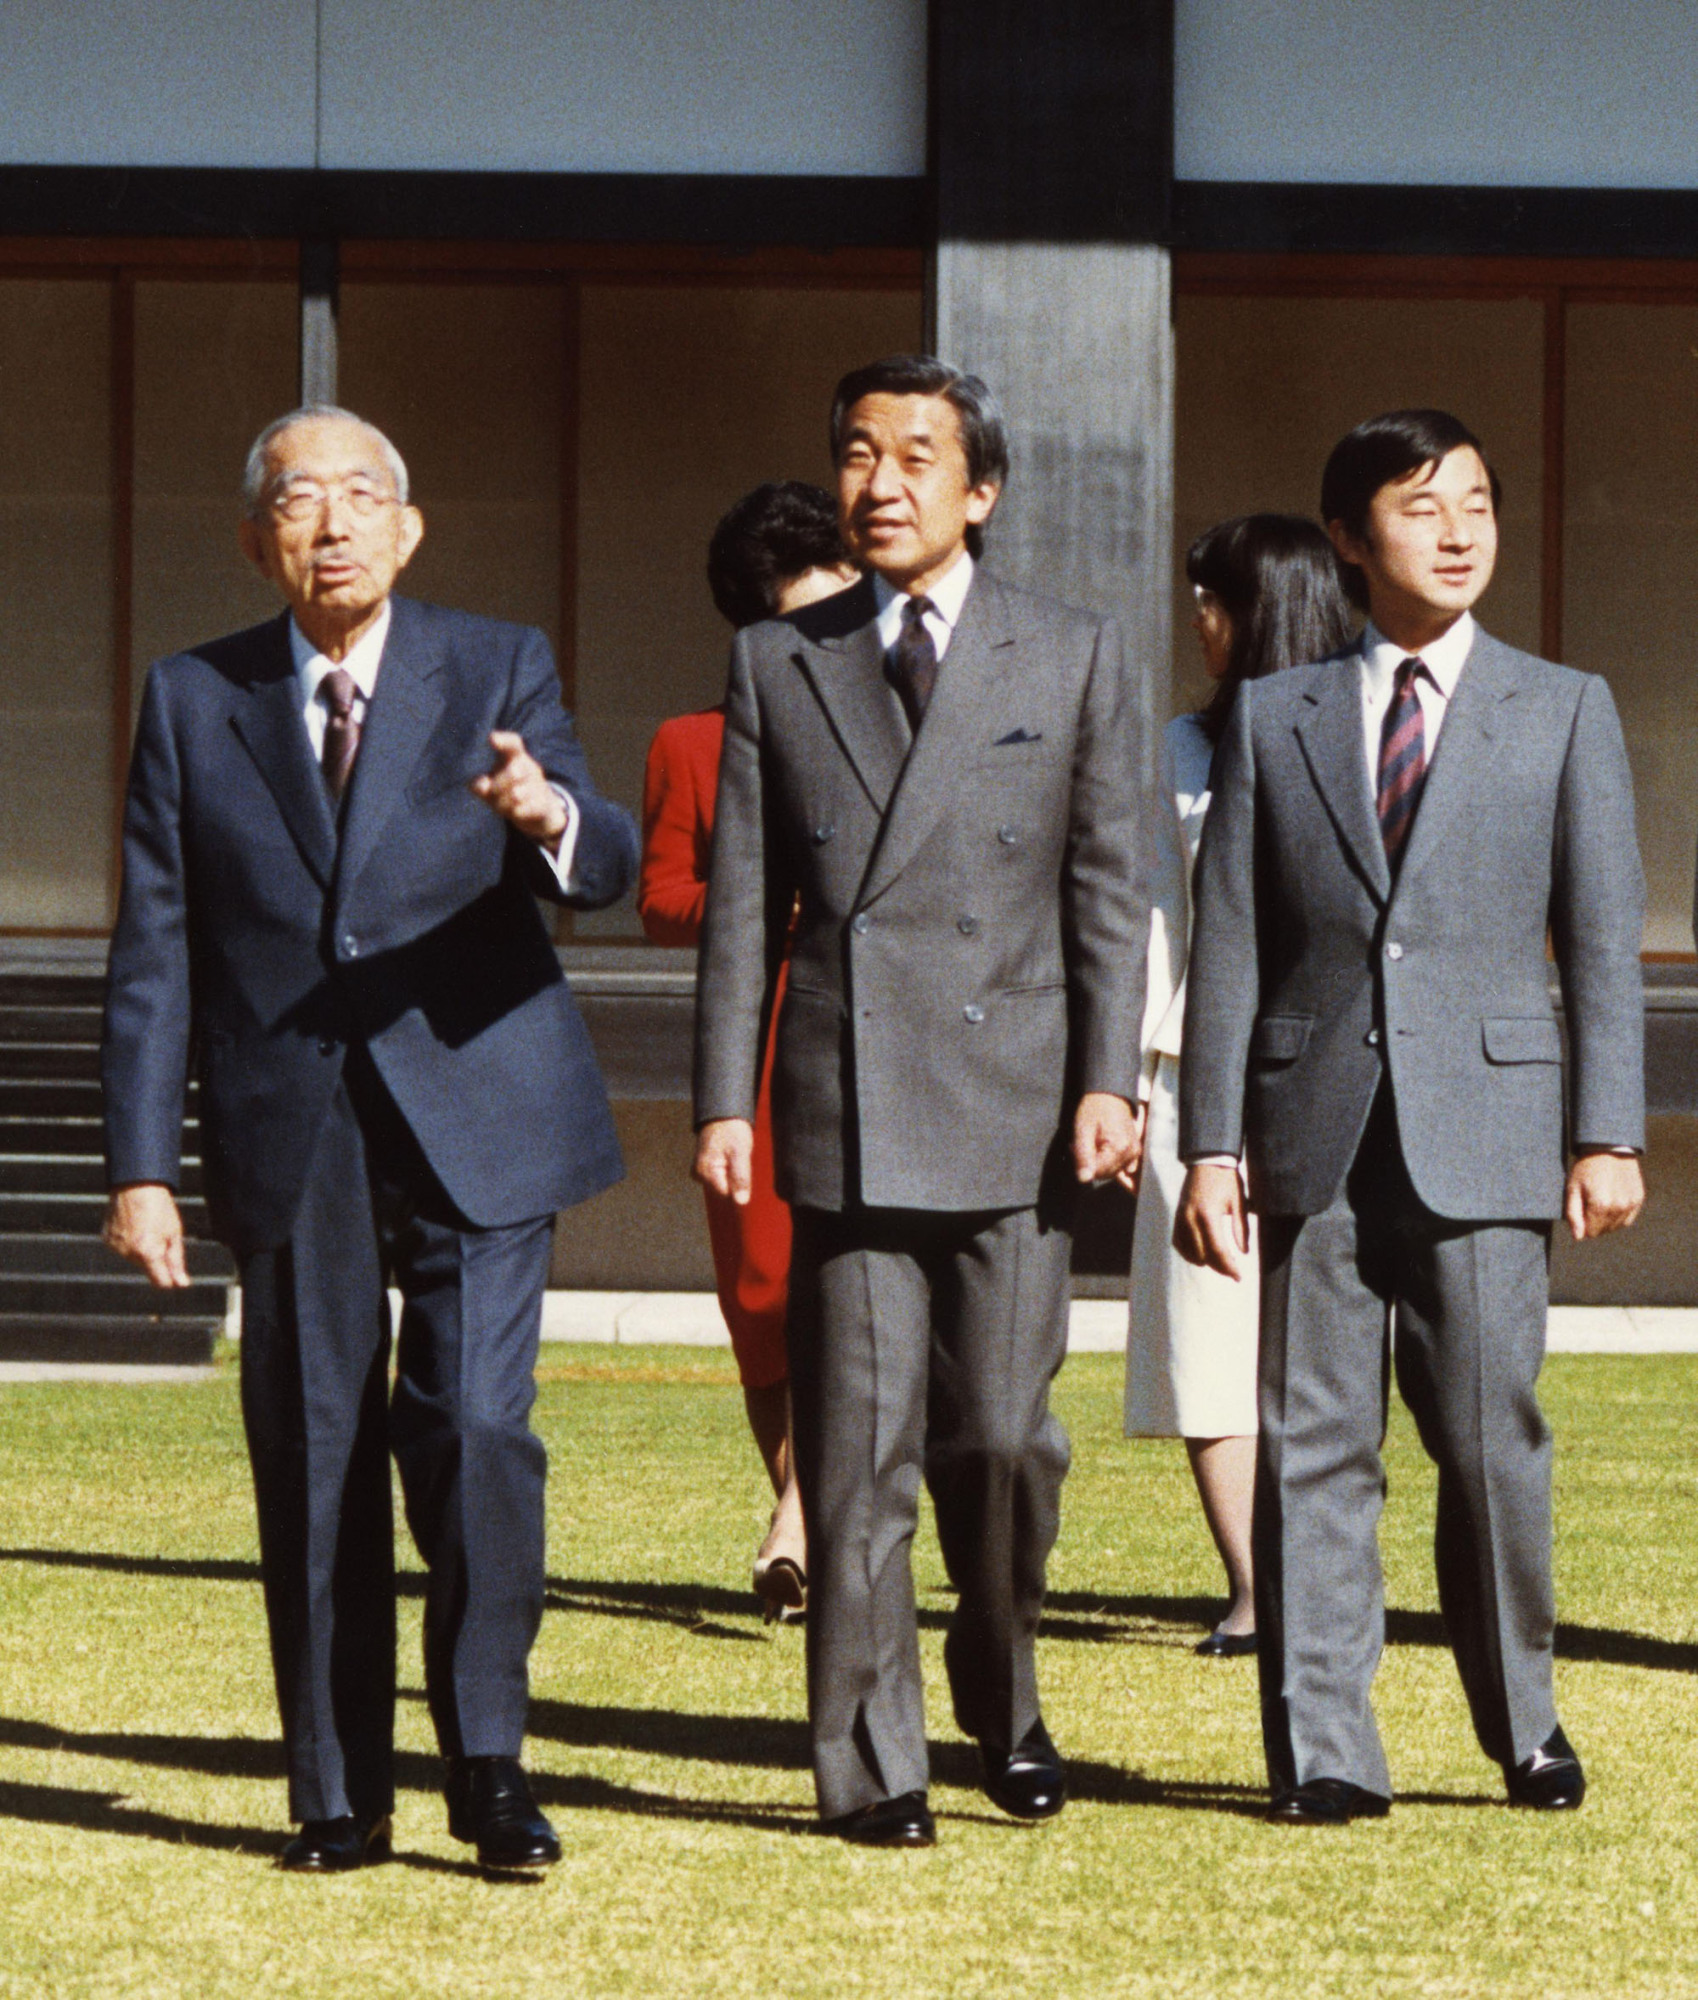 Emperor Hirohito, Crown Prince Akihito and his grandson Prince Hiro (later Crown Prince Naruhito) stroll through the Imperial Palace on Nov. 22, 1987. They went on to become three generations of emperors through the eras of Showa, Heisei and now Reiwa.